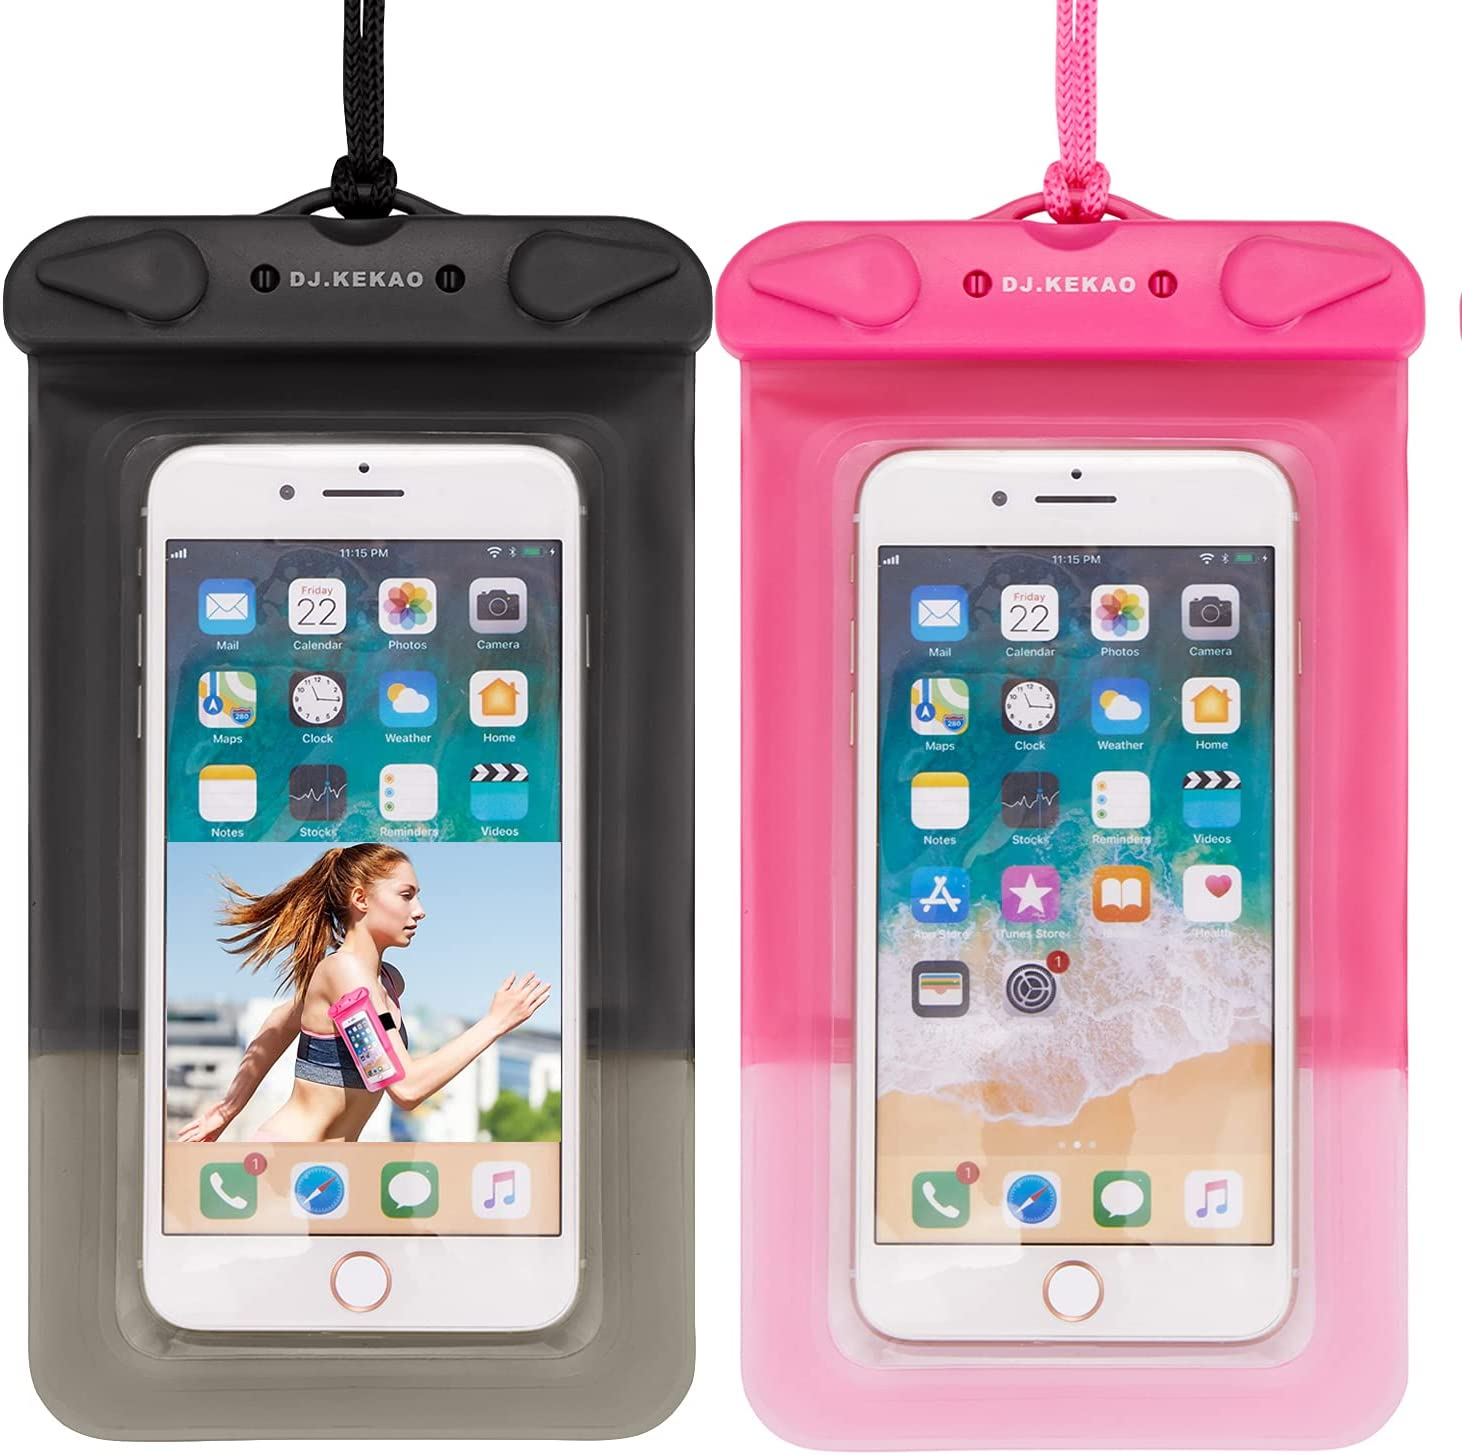 2 Pack Waterproof Float Phone Pouch with Neck Trap and Armband,Waterproof Phone case, Dry Bag Outdoor Beach Bag for iPhone, Samsung Galaxy, and Other Phones Up to 6.9'' (Black+Pink)